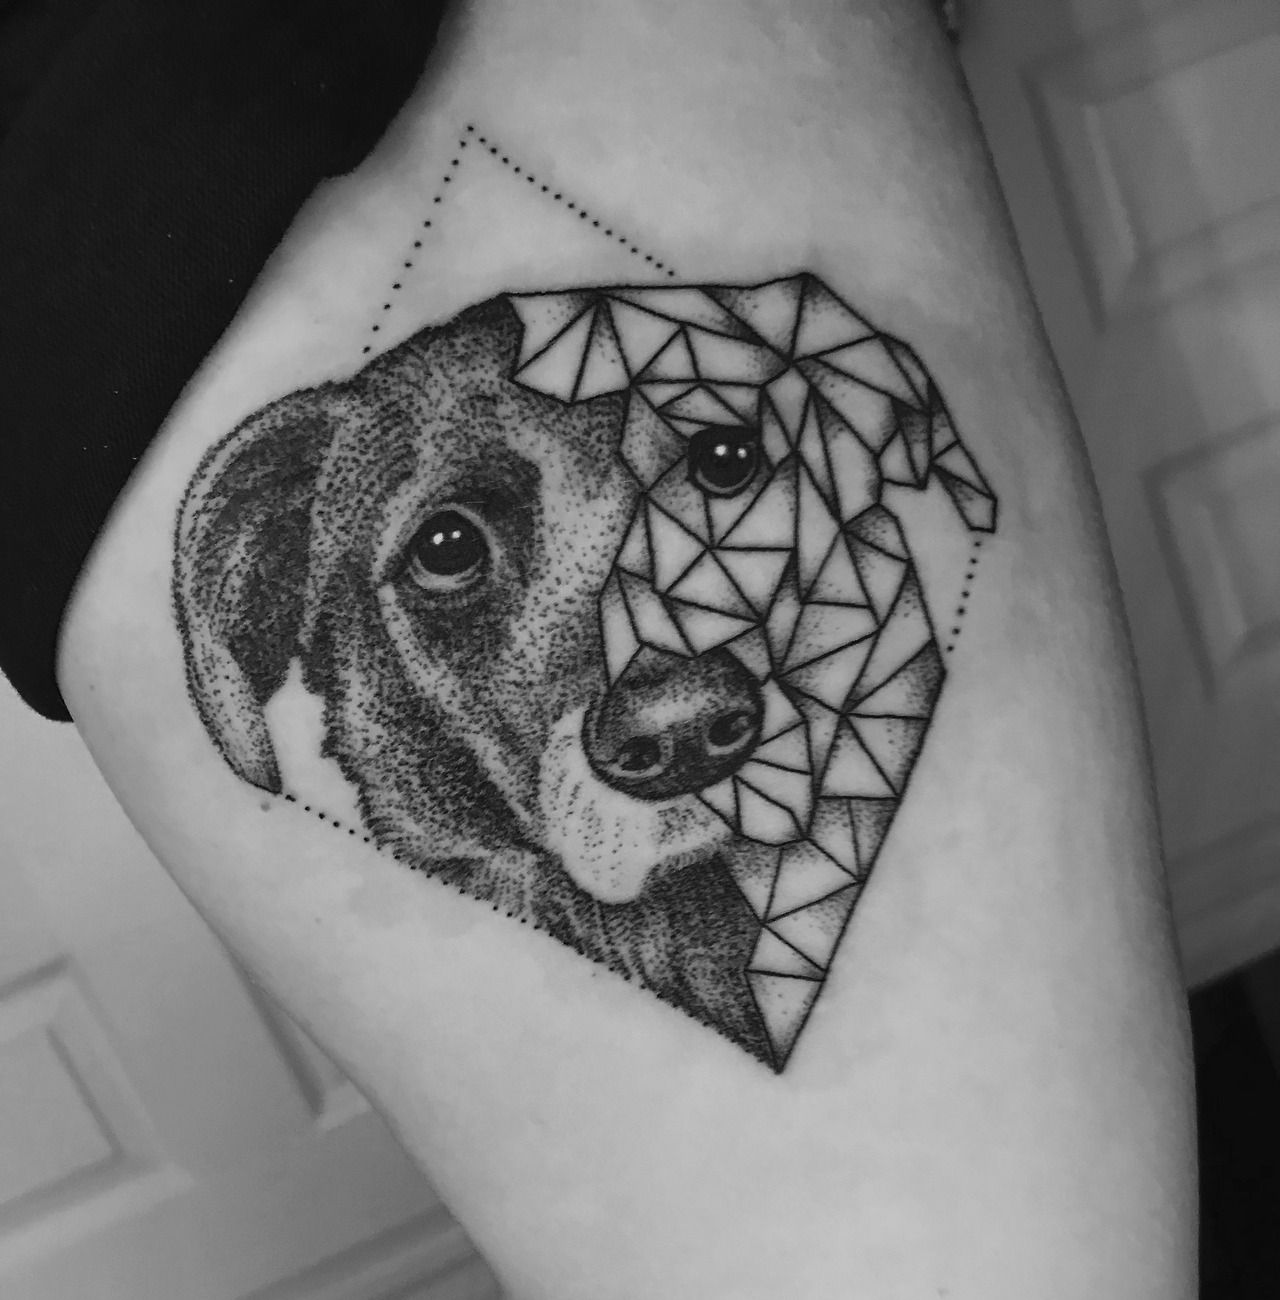 done by zeke yip at chronic ink in markham ontario dog tattoo